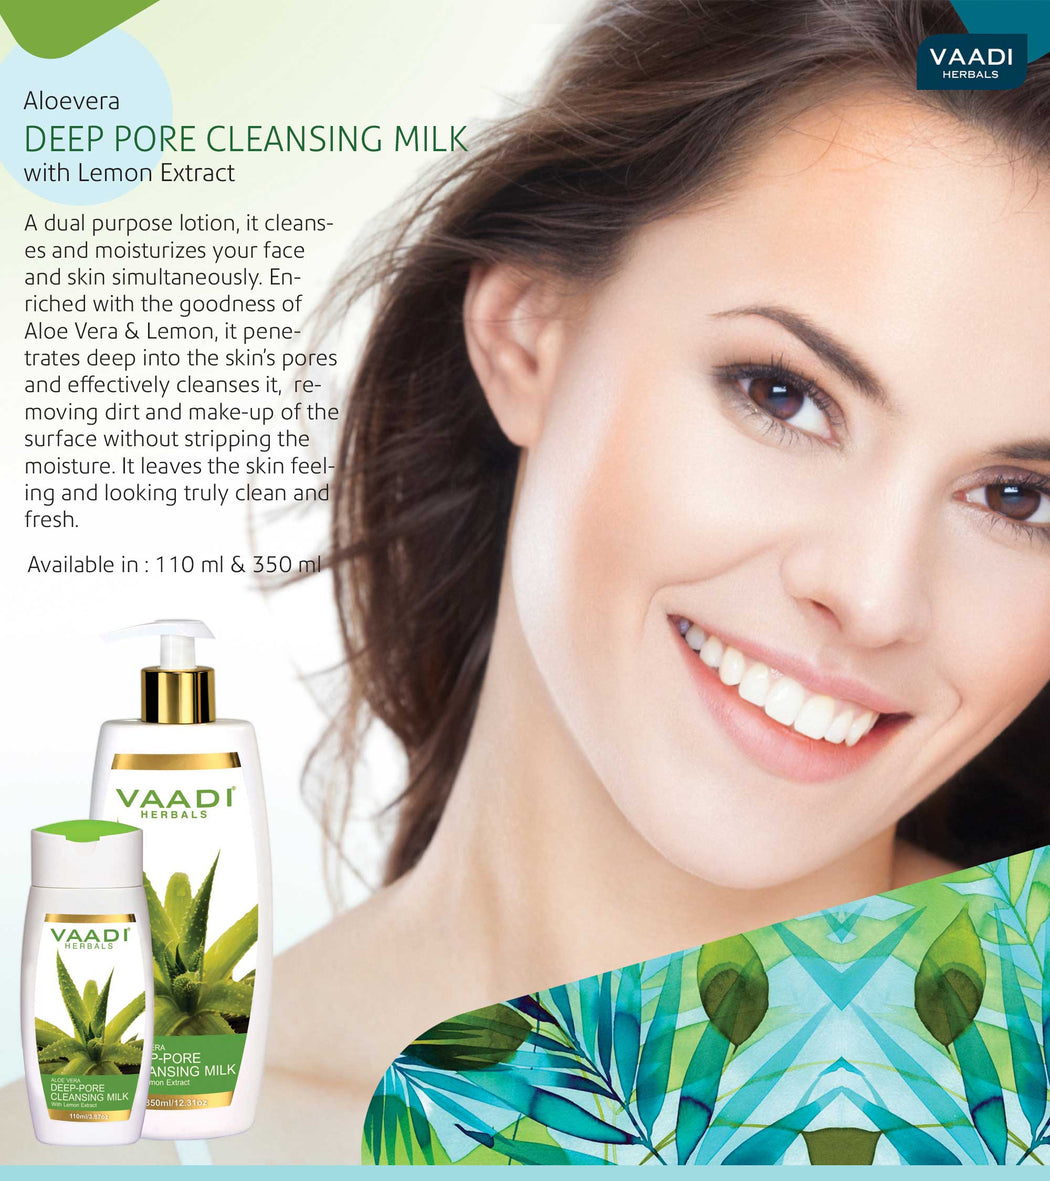 Pack of 3 ALOEVERA DEEP PORE CLEANSING MILK with Lemon extract (110 ml x 3)